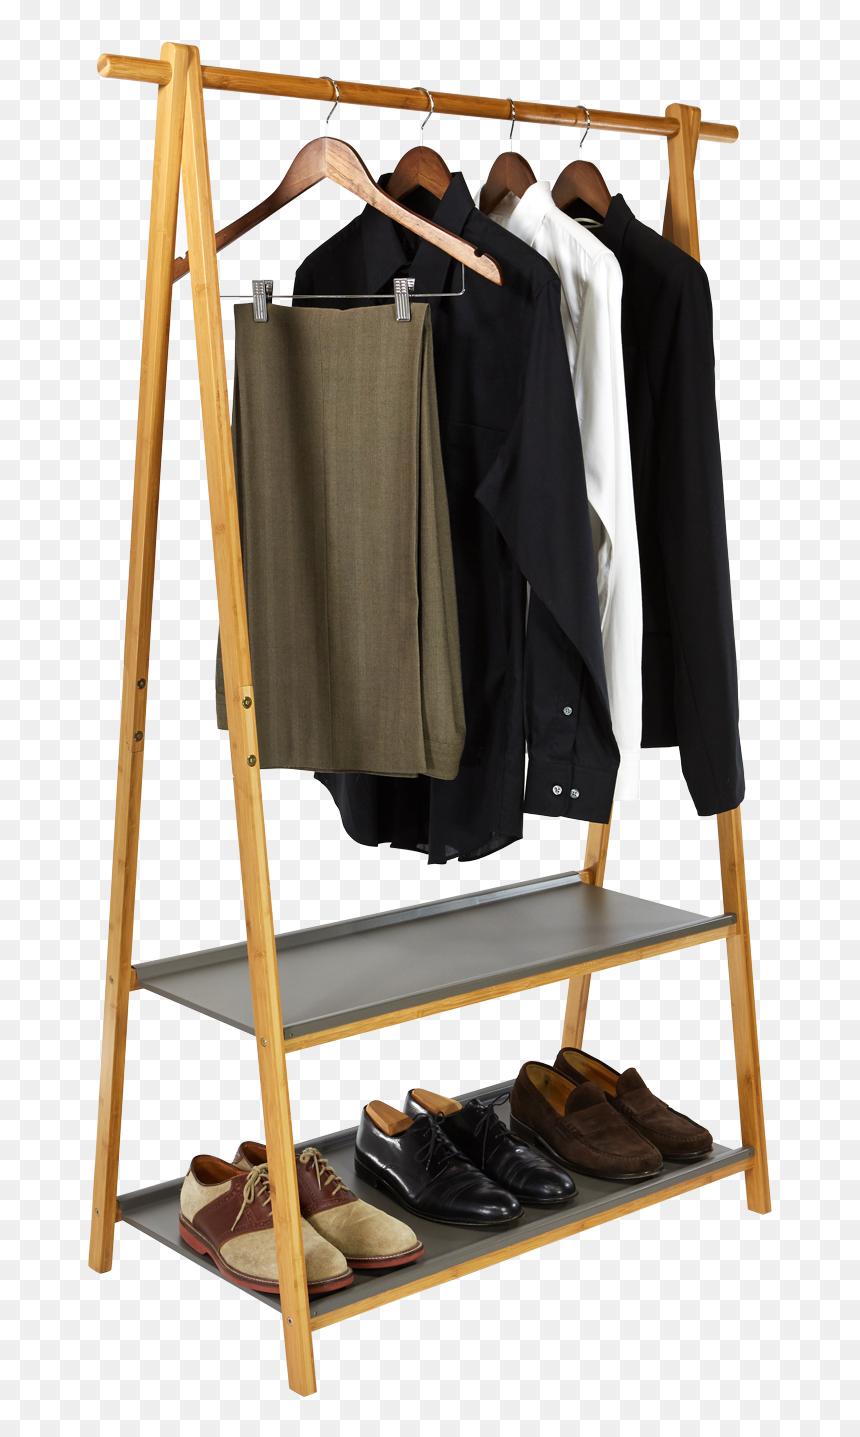 Clothing Rack Png - Rack Of Clothes Png, Transparent Png